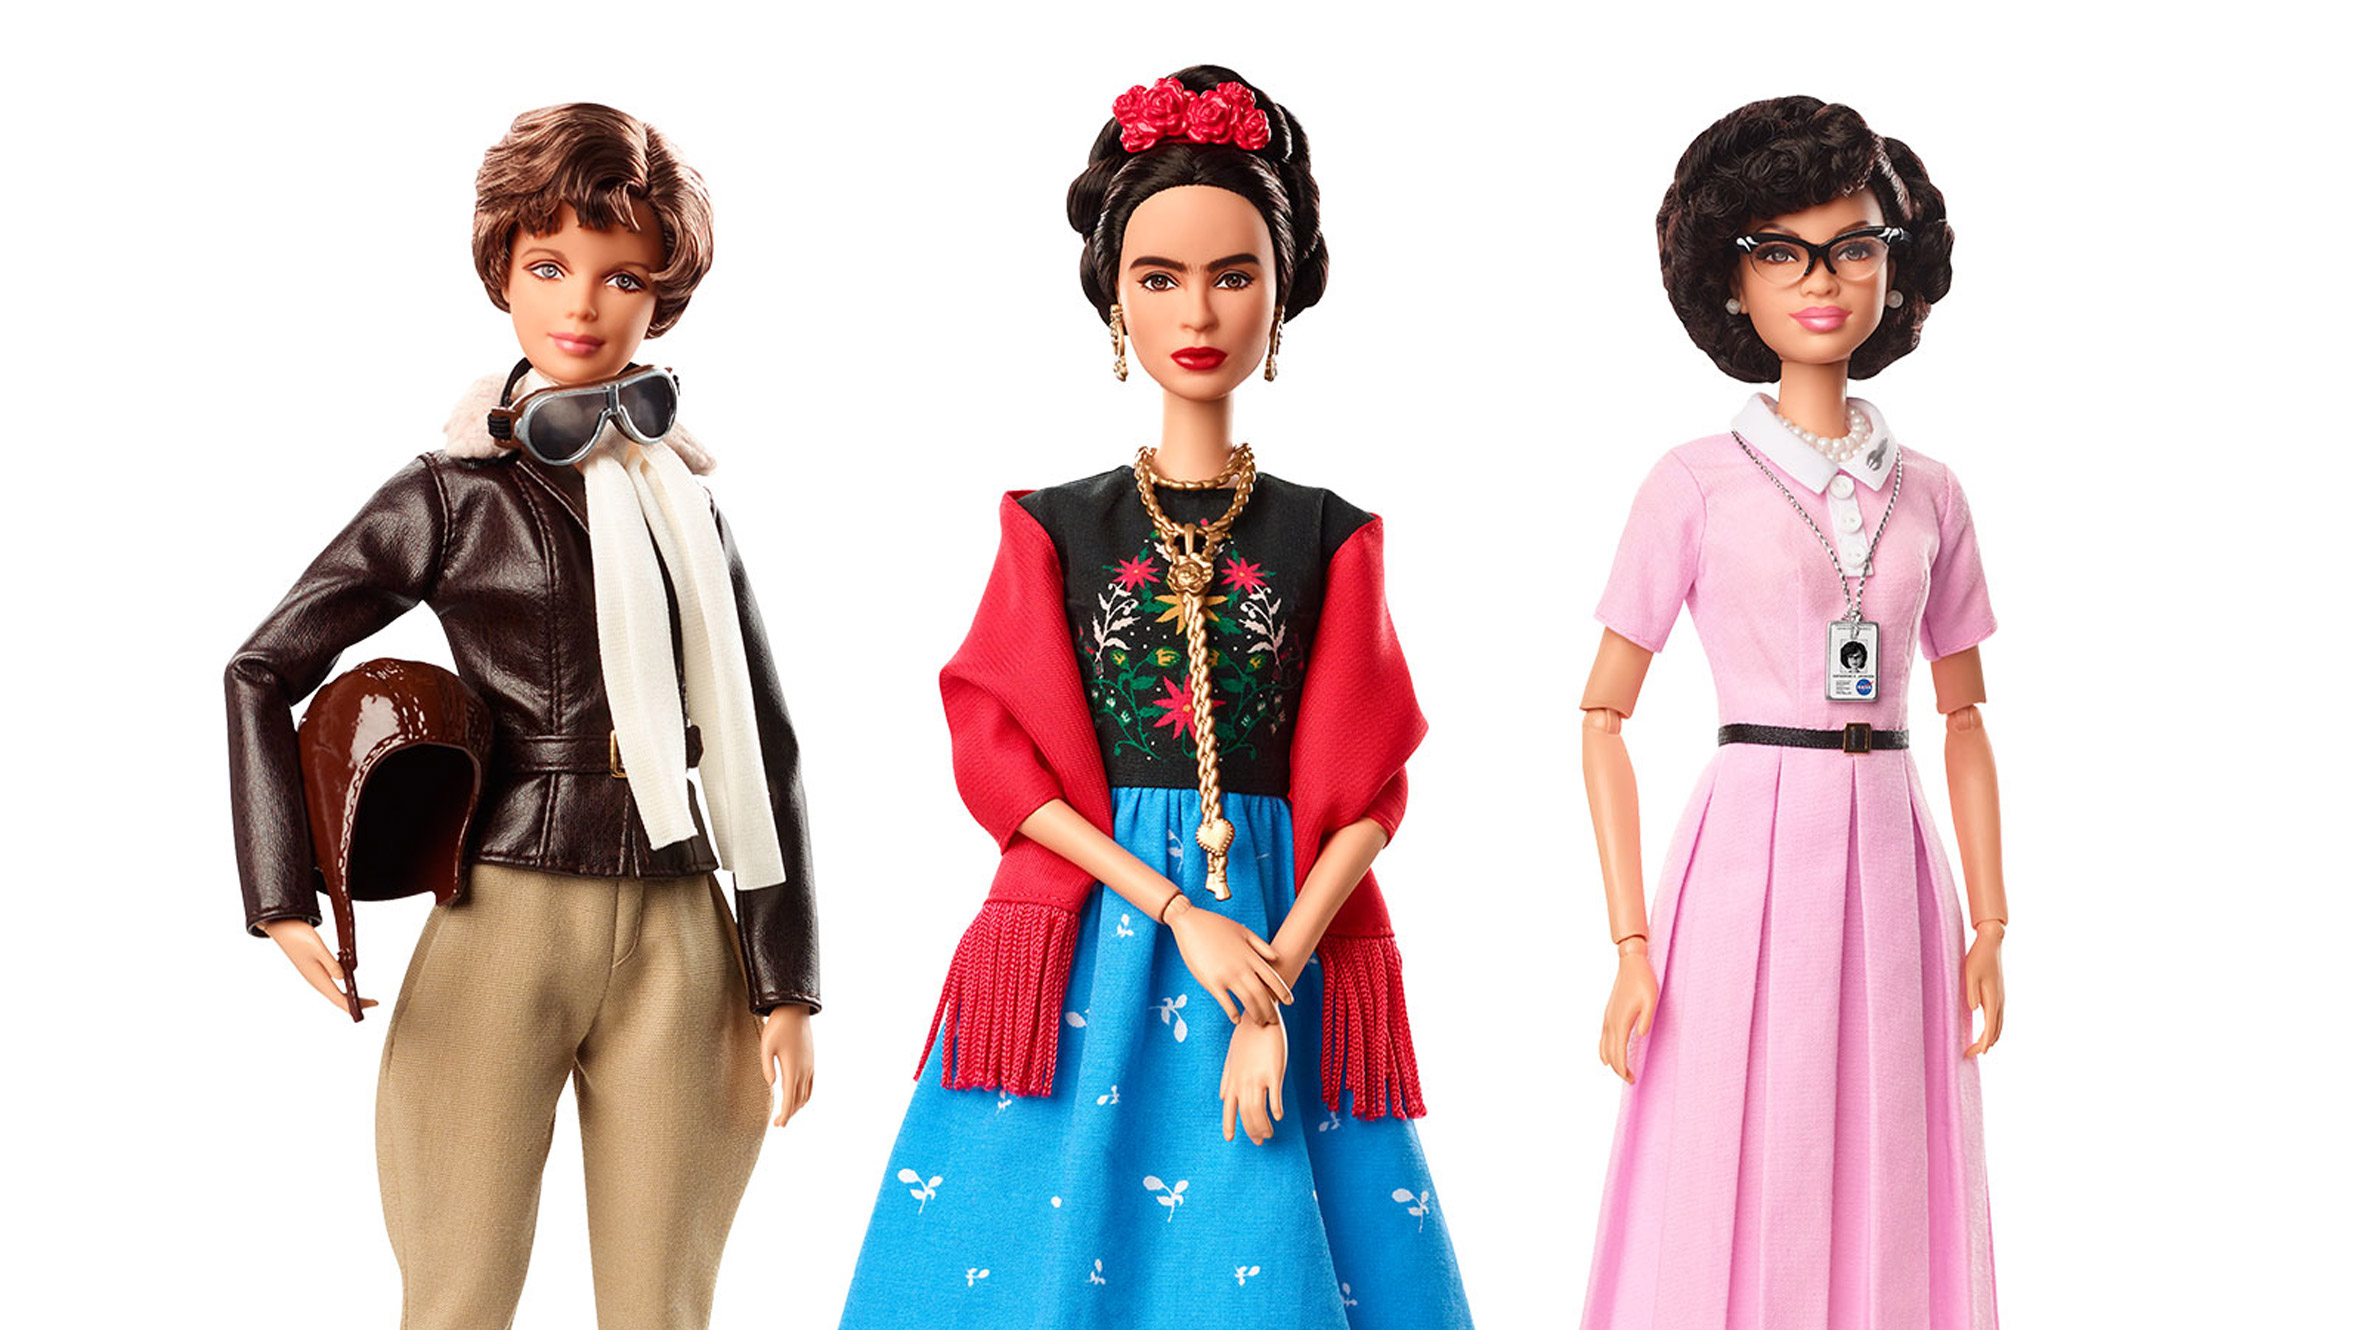 Barbie launches collection of female role models for International Women's Day